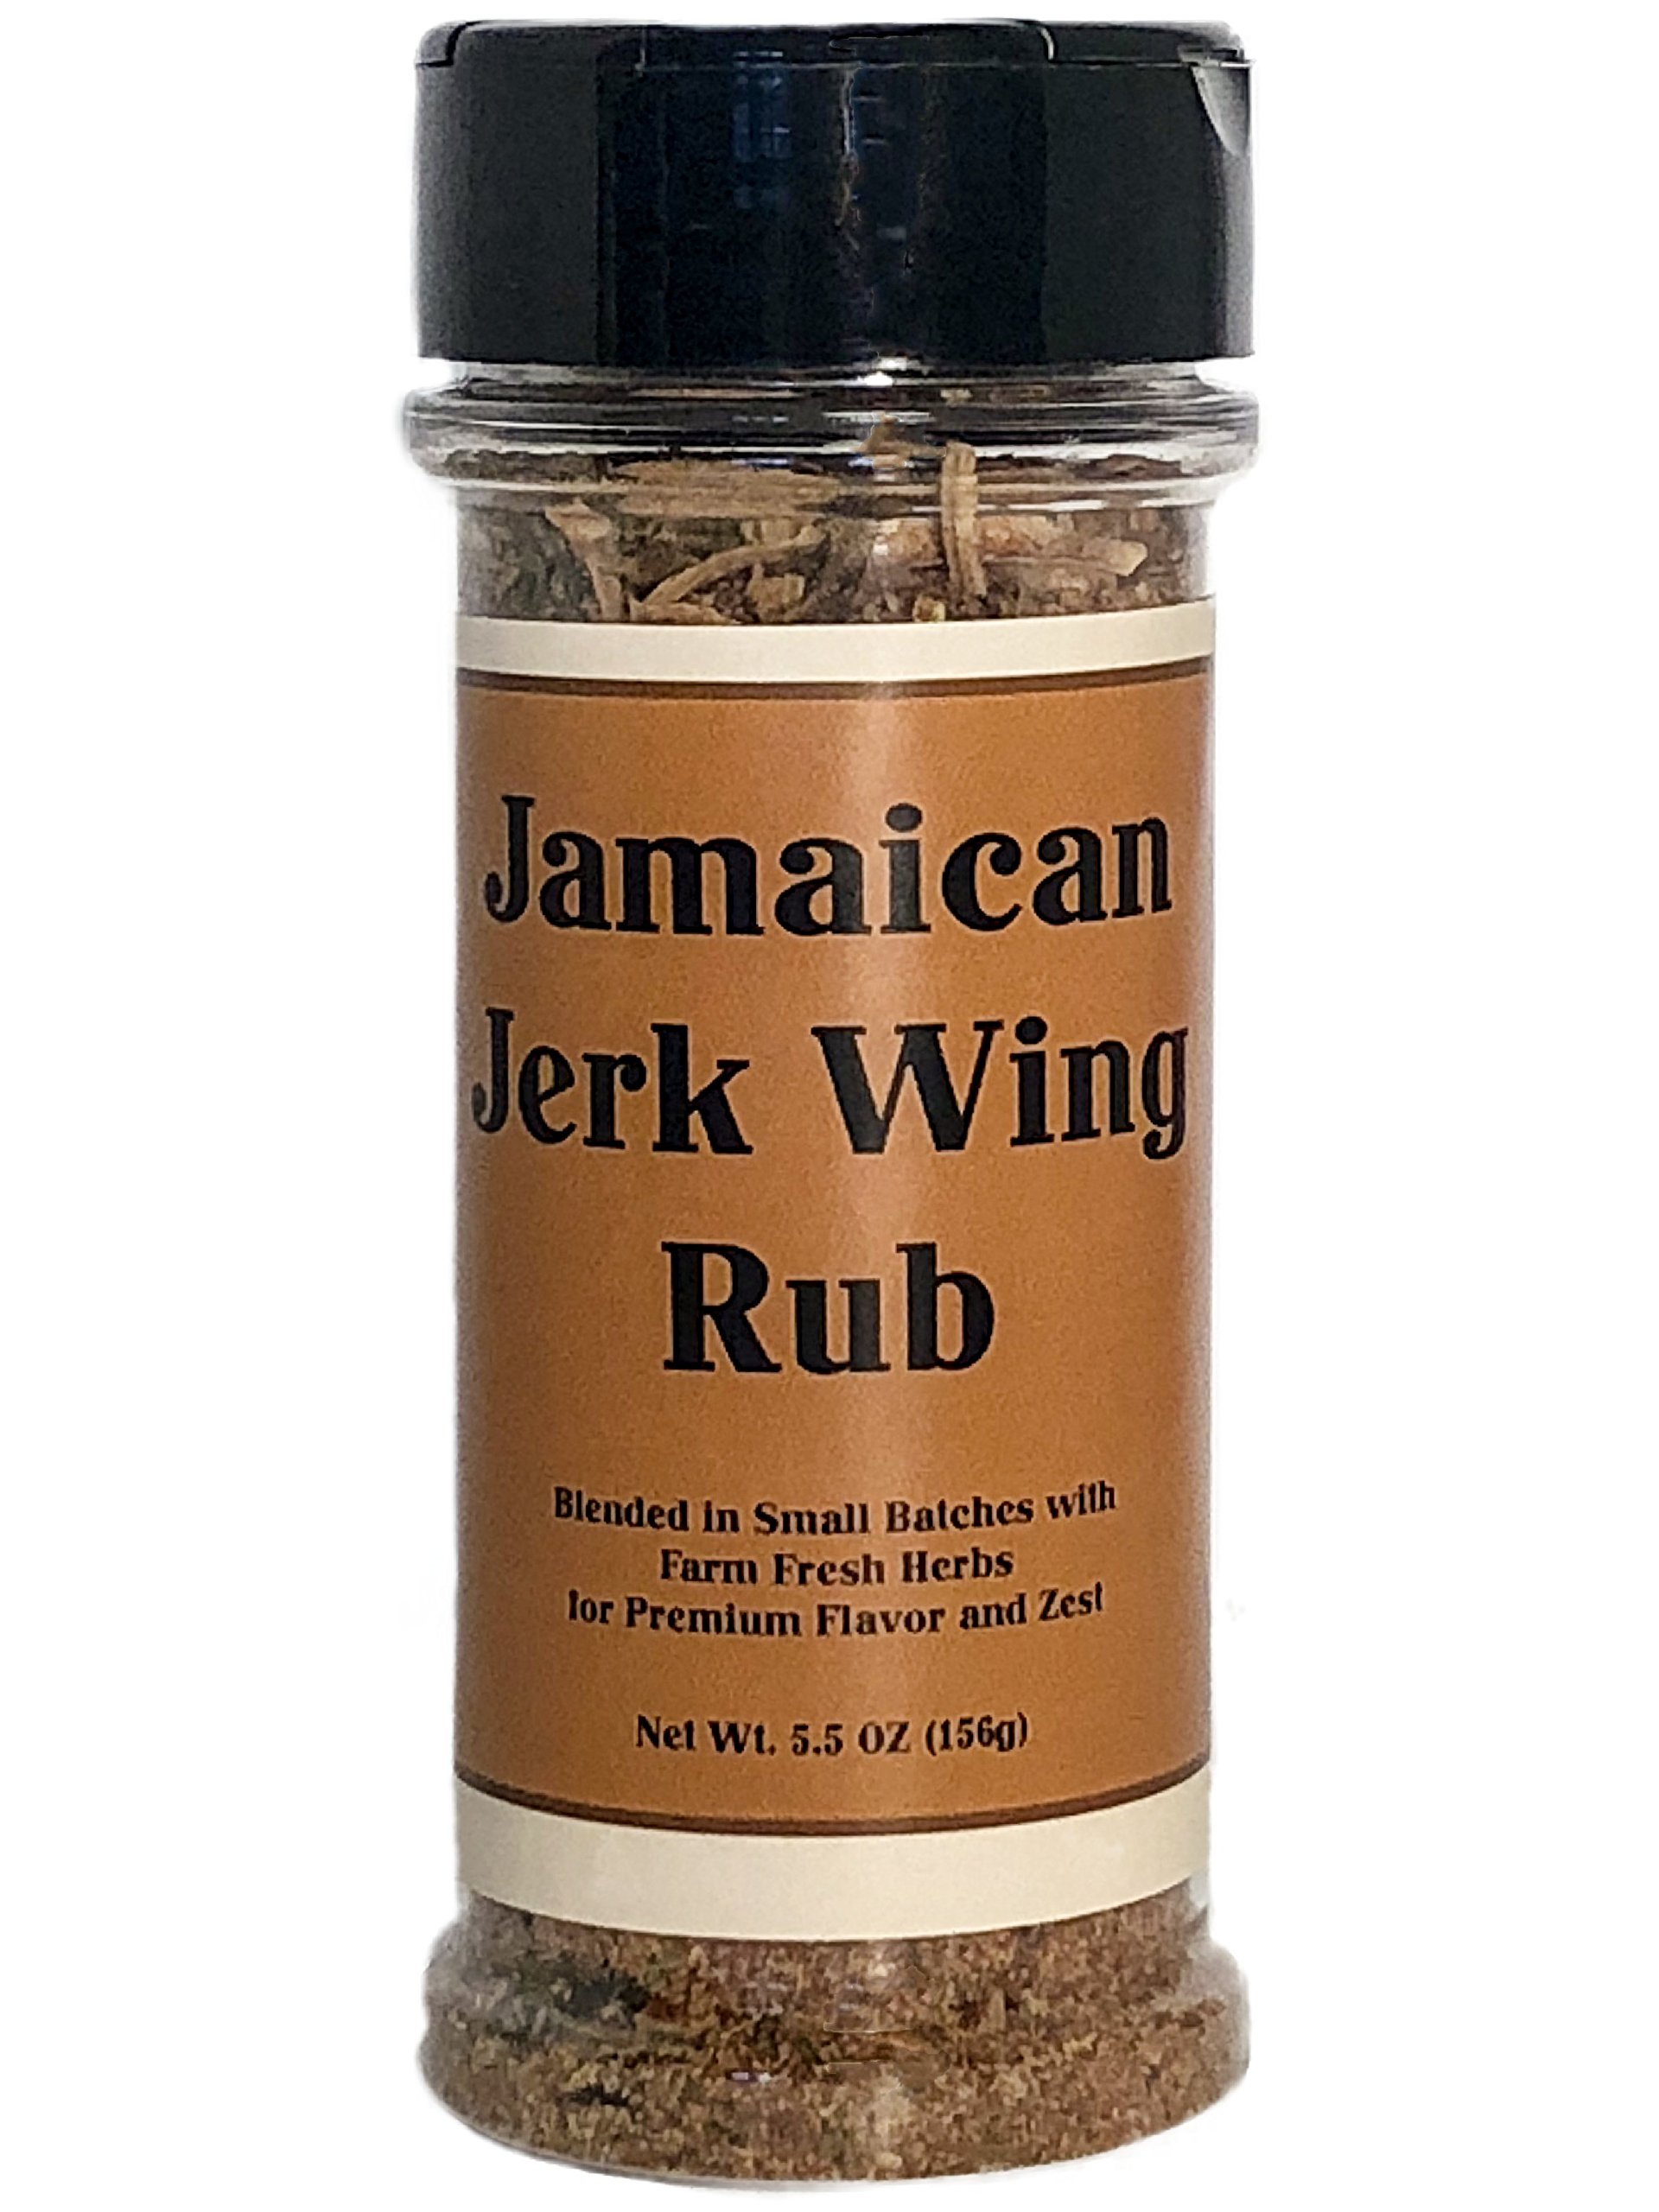 Jamaican Jerk Seasoning - Crafted in Small Batches with Farm Fresh Herbs for Premium Flavor and Zest